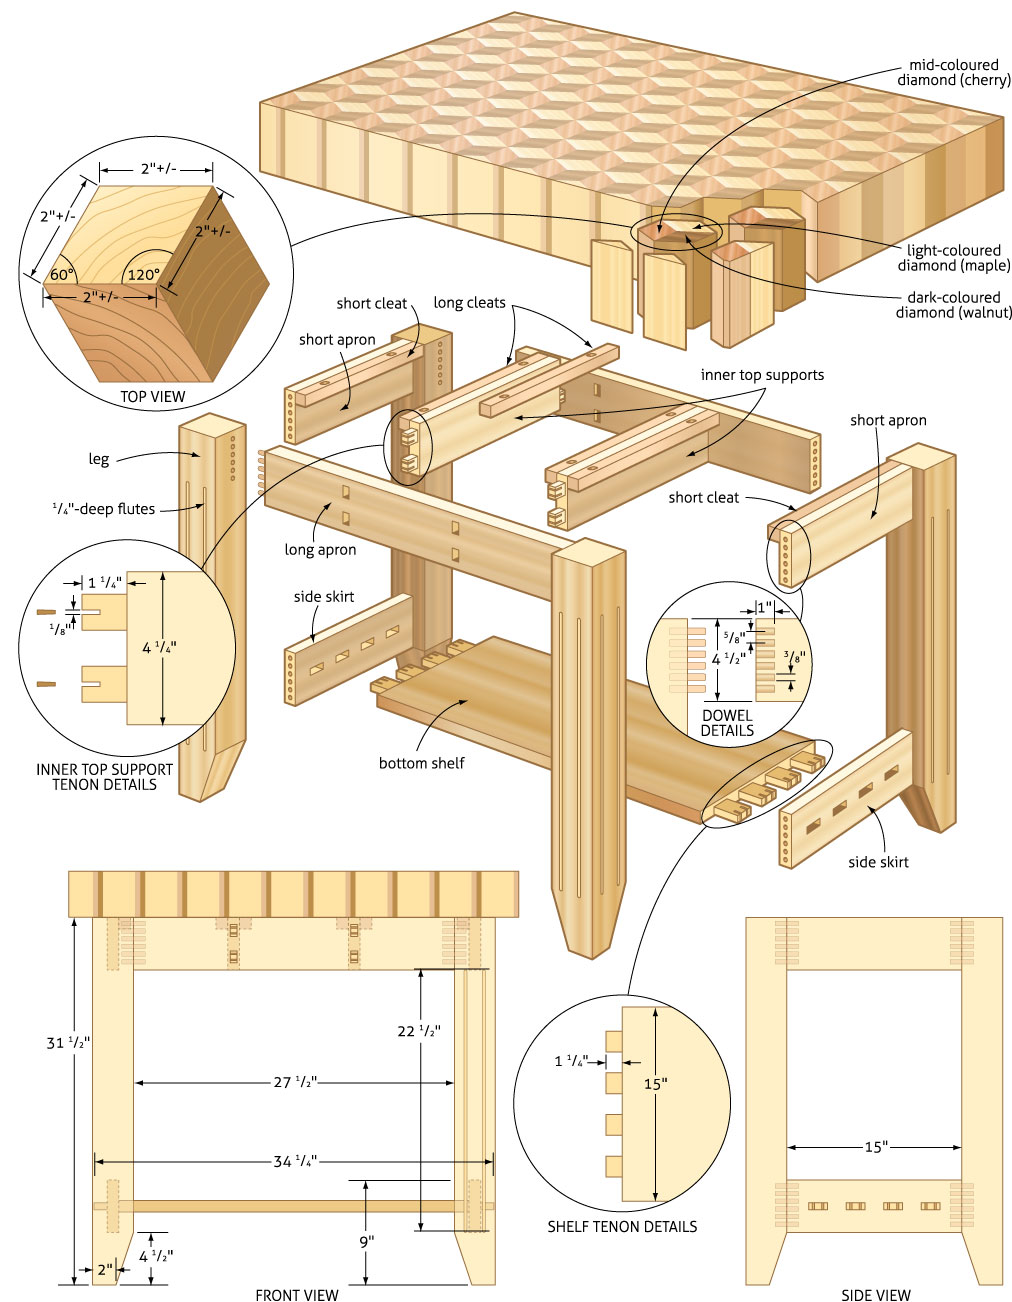 Woodworking Layout Tips With Brilliant Photo In Australia | egorlin.com